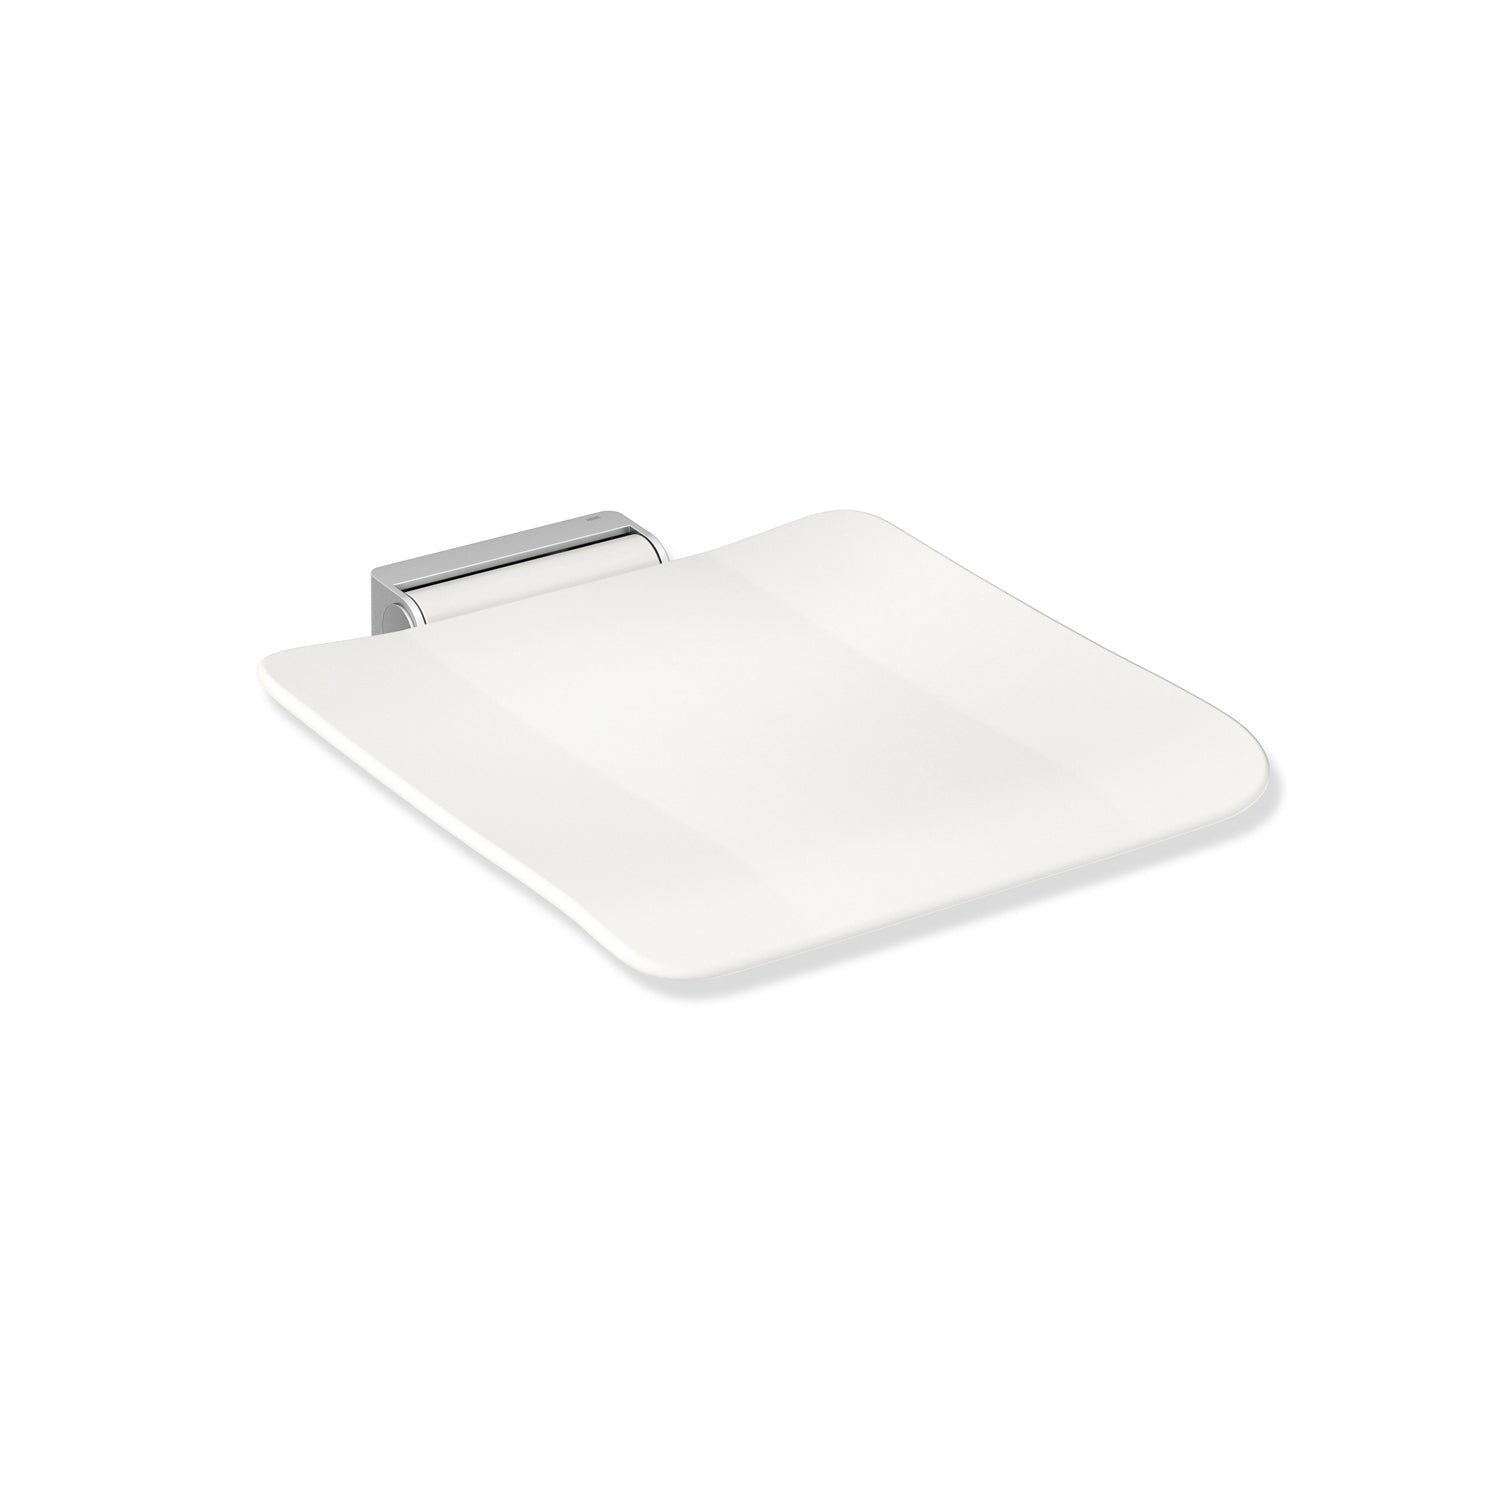 Freestyle Removable Shower Seat Set with a white Seat Set and satin steel bracket on a white background